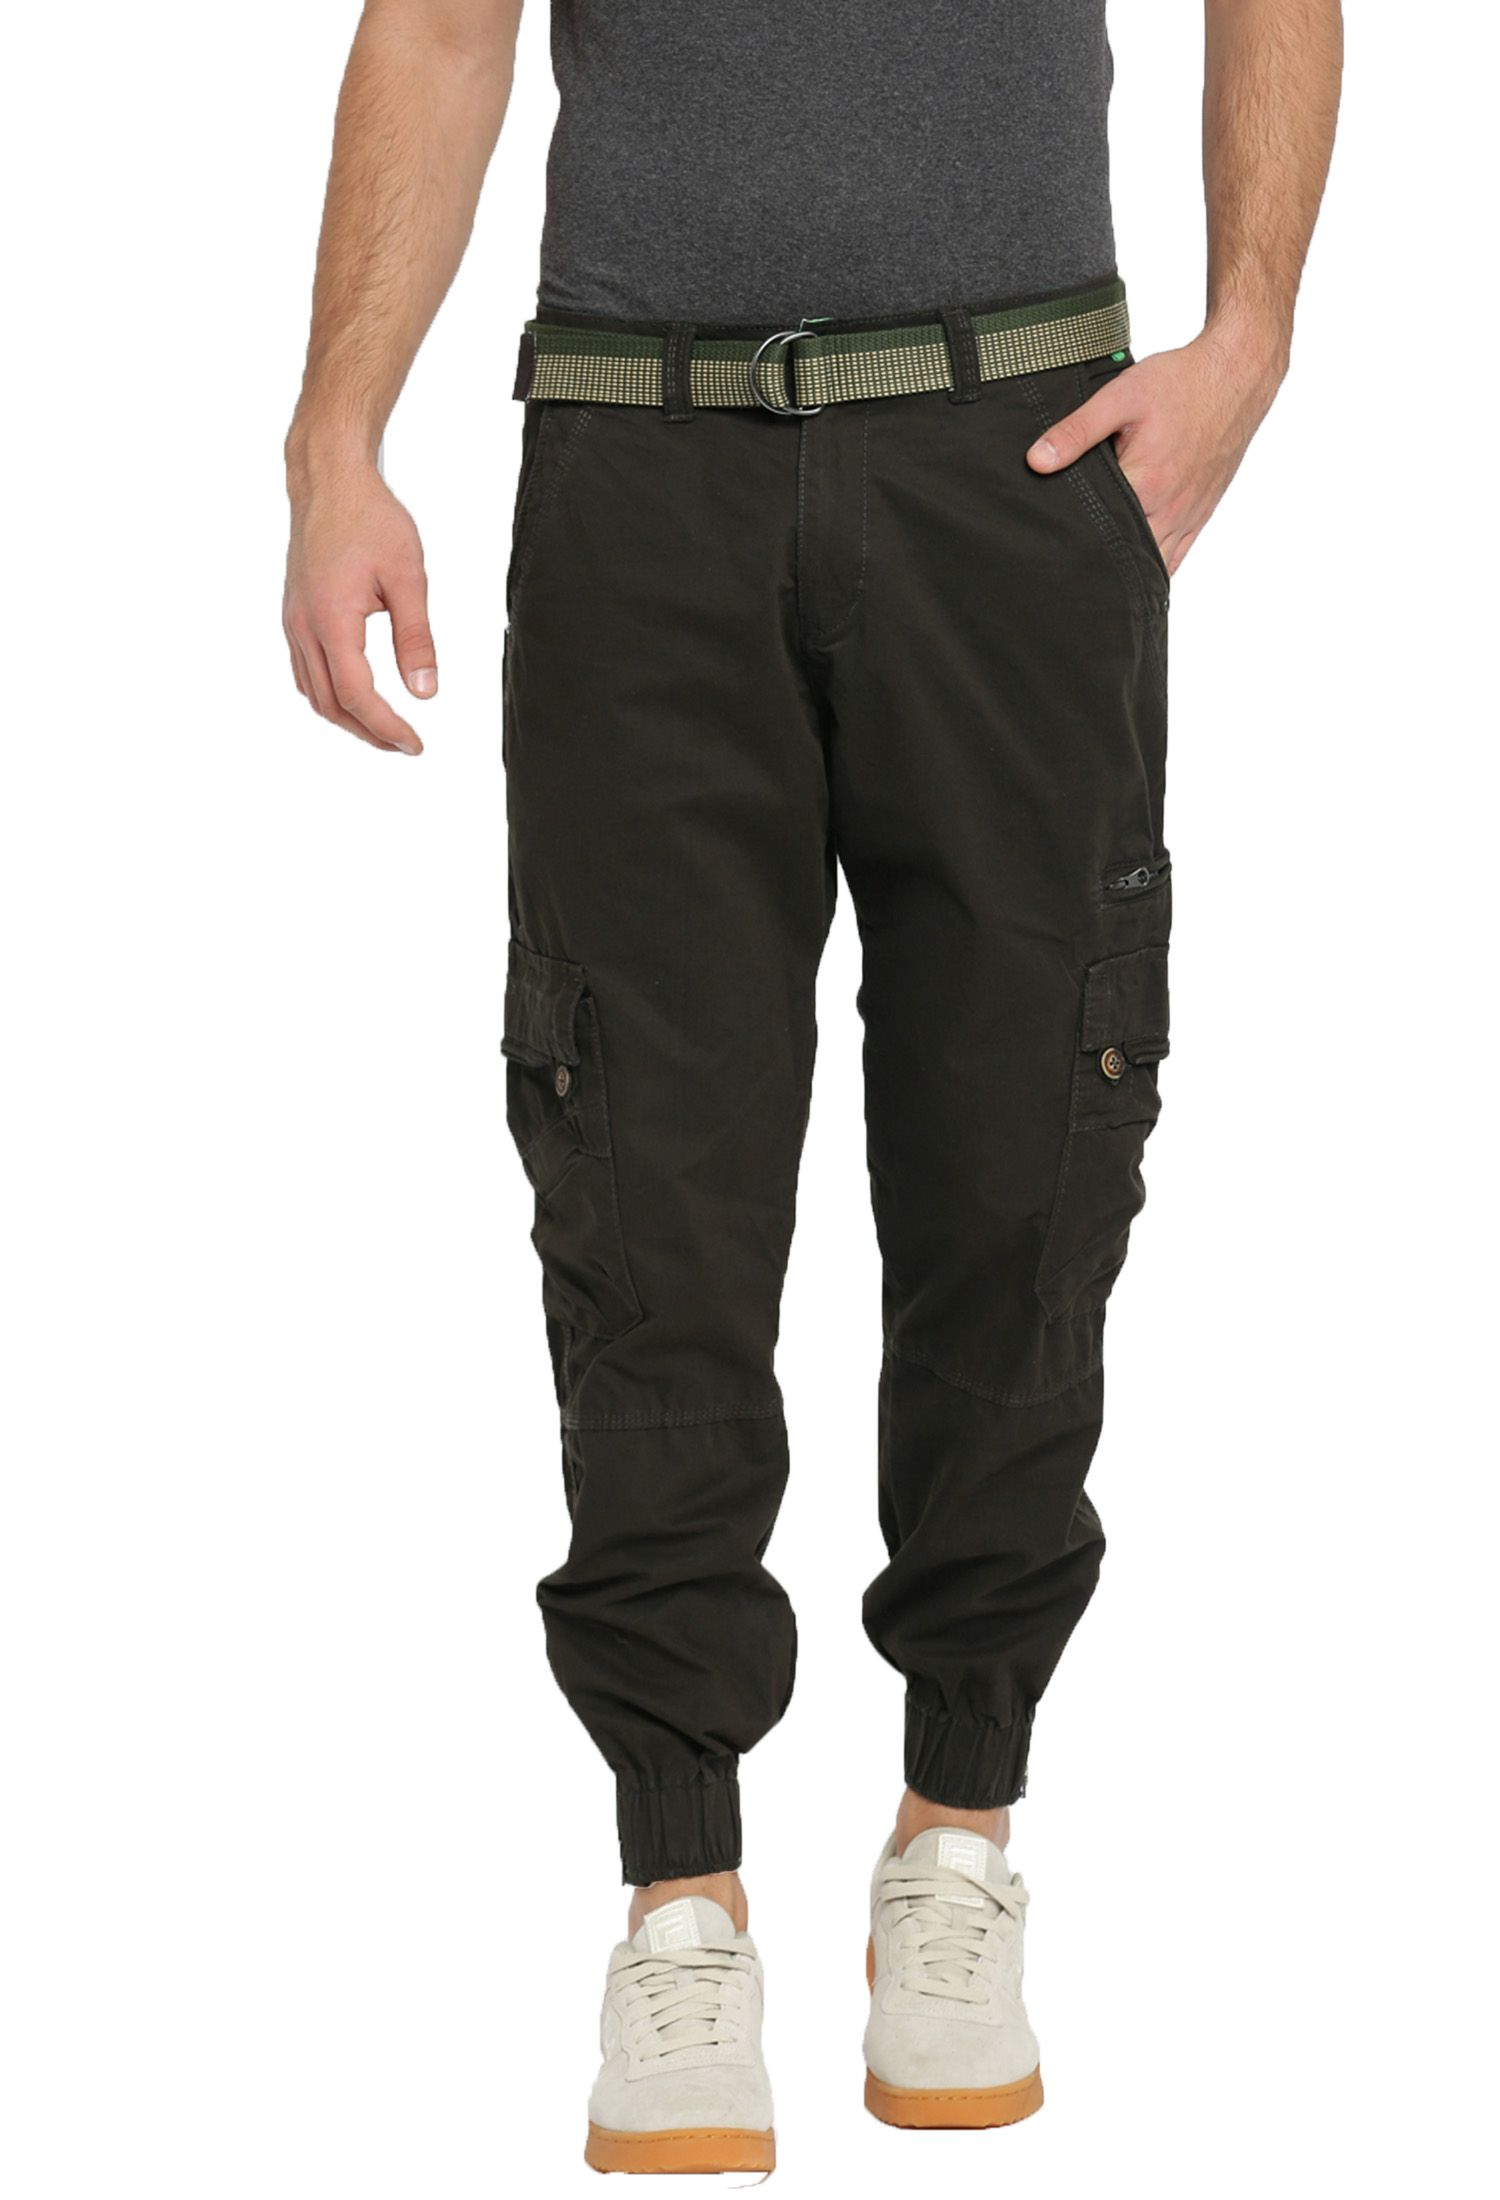 FIFTY TWO Green Slim -Fit Flat Cargos